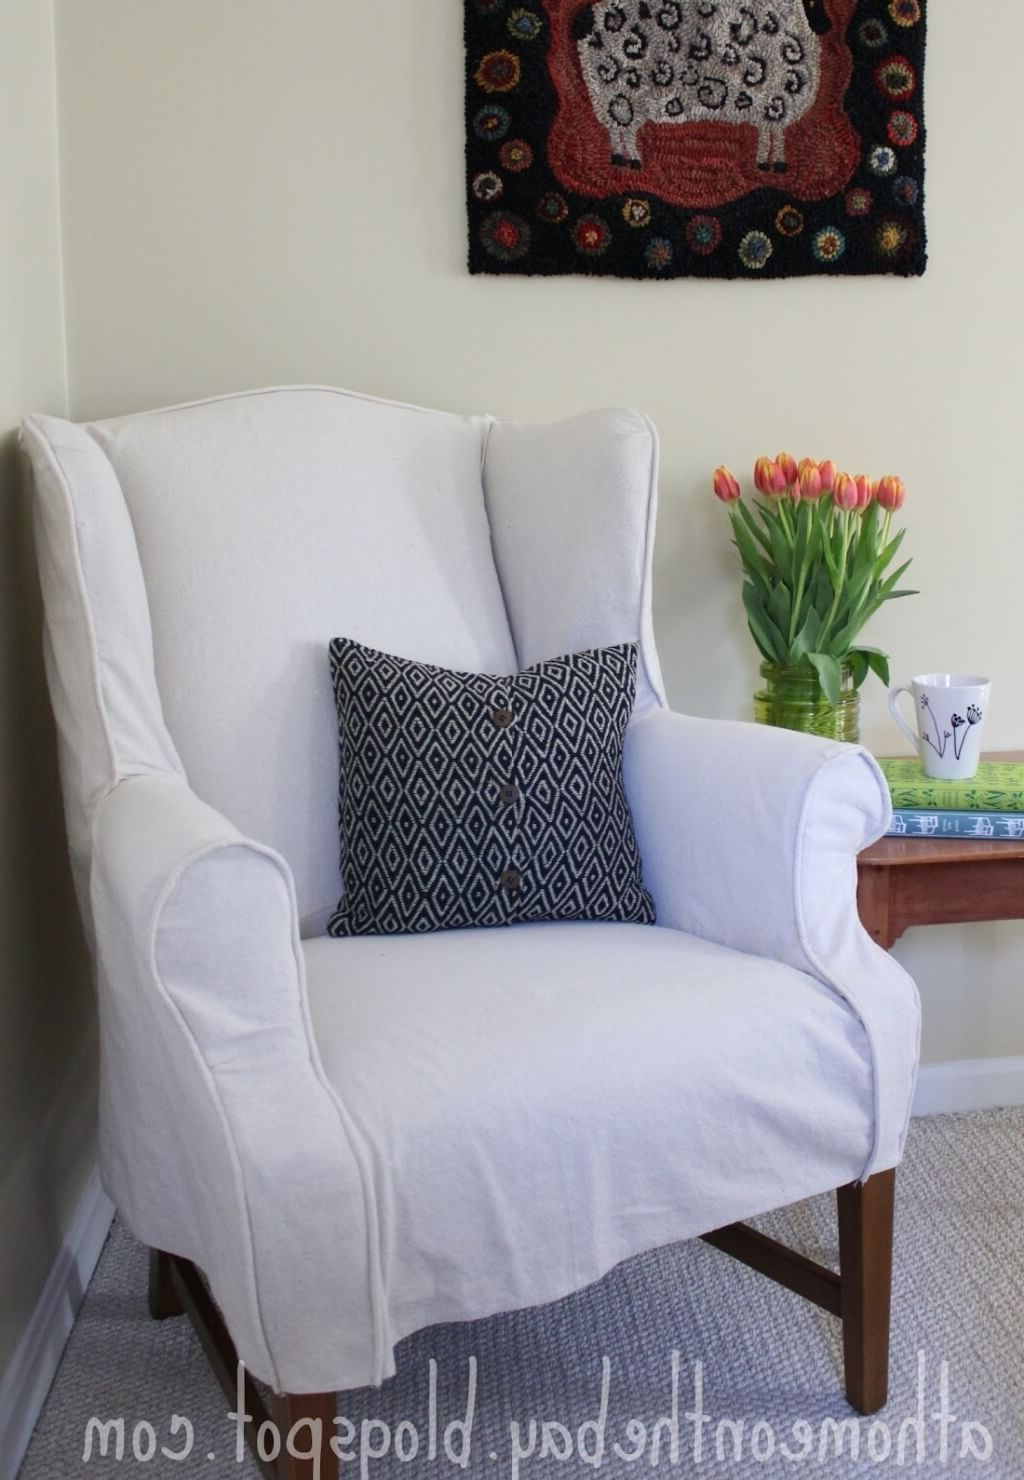 Pottery Barn Chair Slipcovers For Chairs How To Cover A Couch With With Current Sofa And Chair Slipcovers (Gallery 17 of 20)